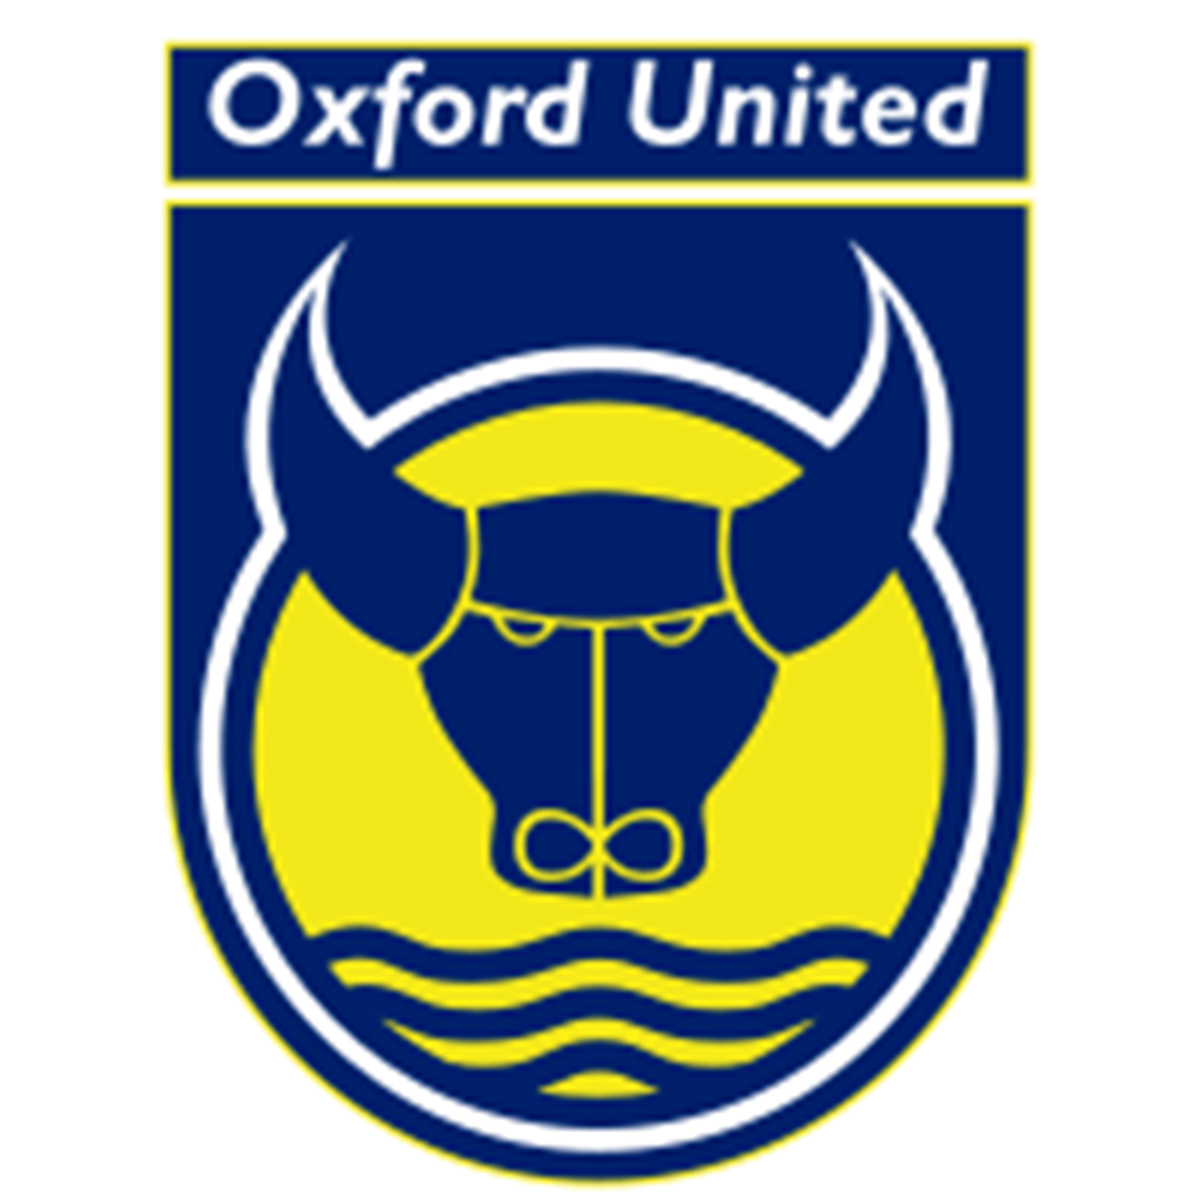 Oxford United beat Fulham in pre-season friendly